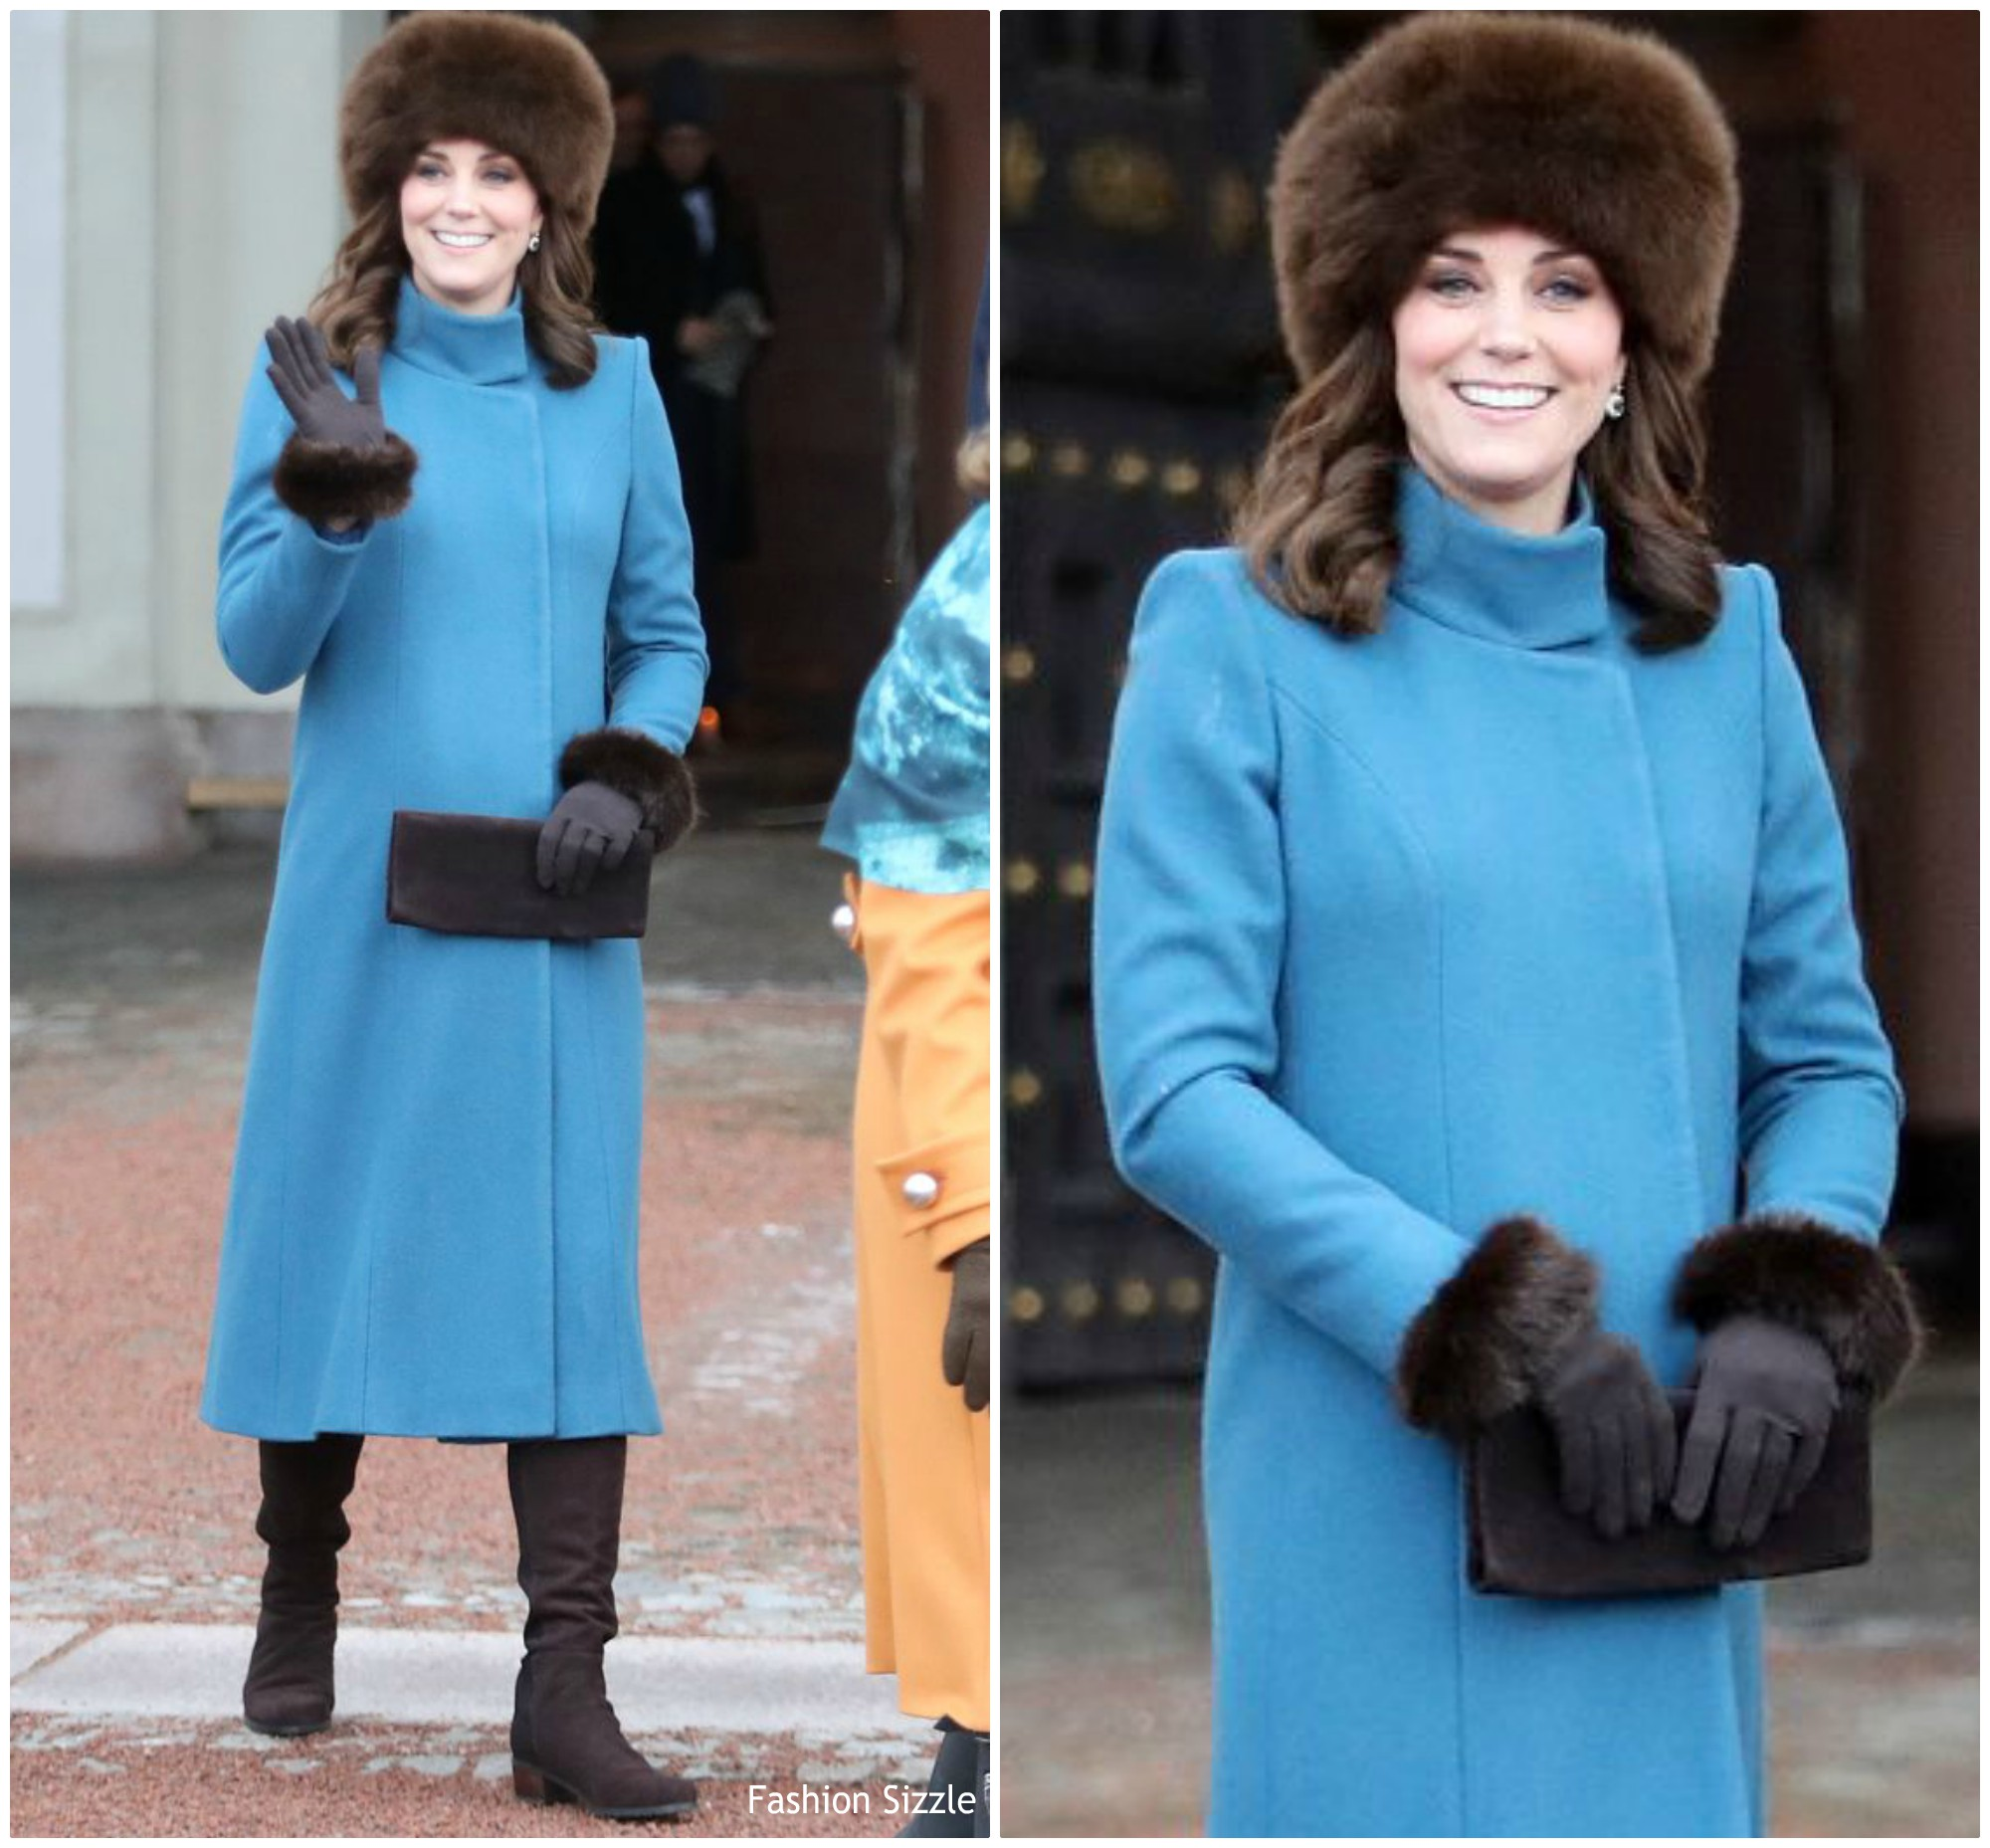 duchess-of-cambridge-in-catherine-walker-visit-sweden-and-norway-day-3